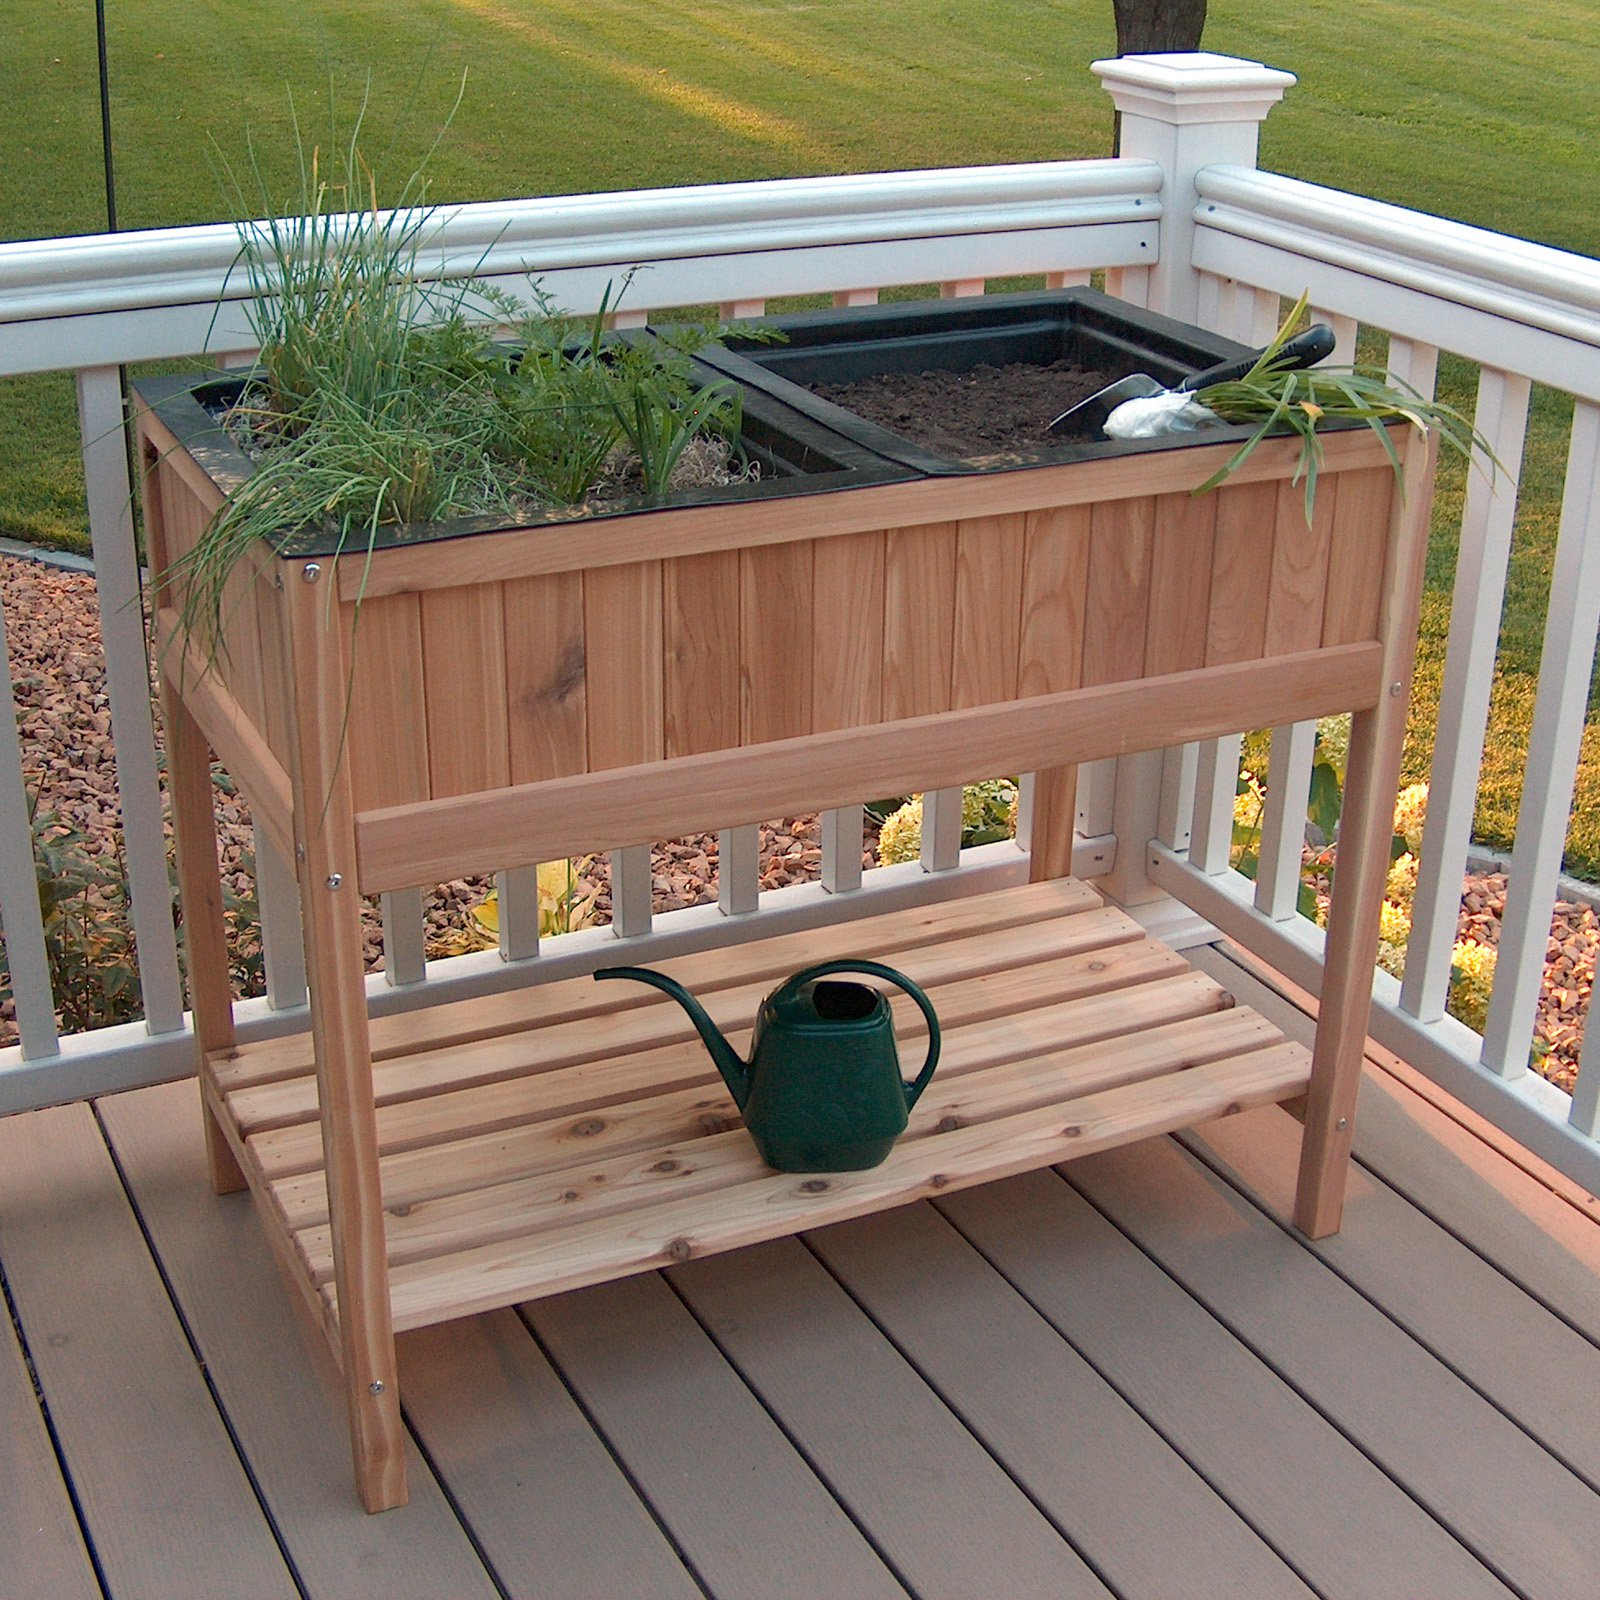 Prairie Leisure Herb Garden Raised Planter with 2 Liners